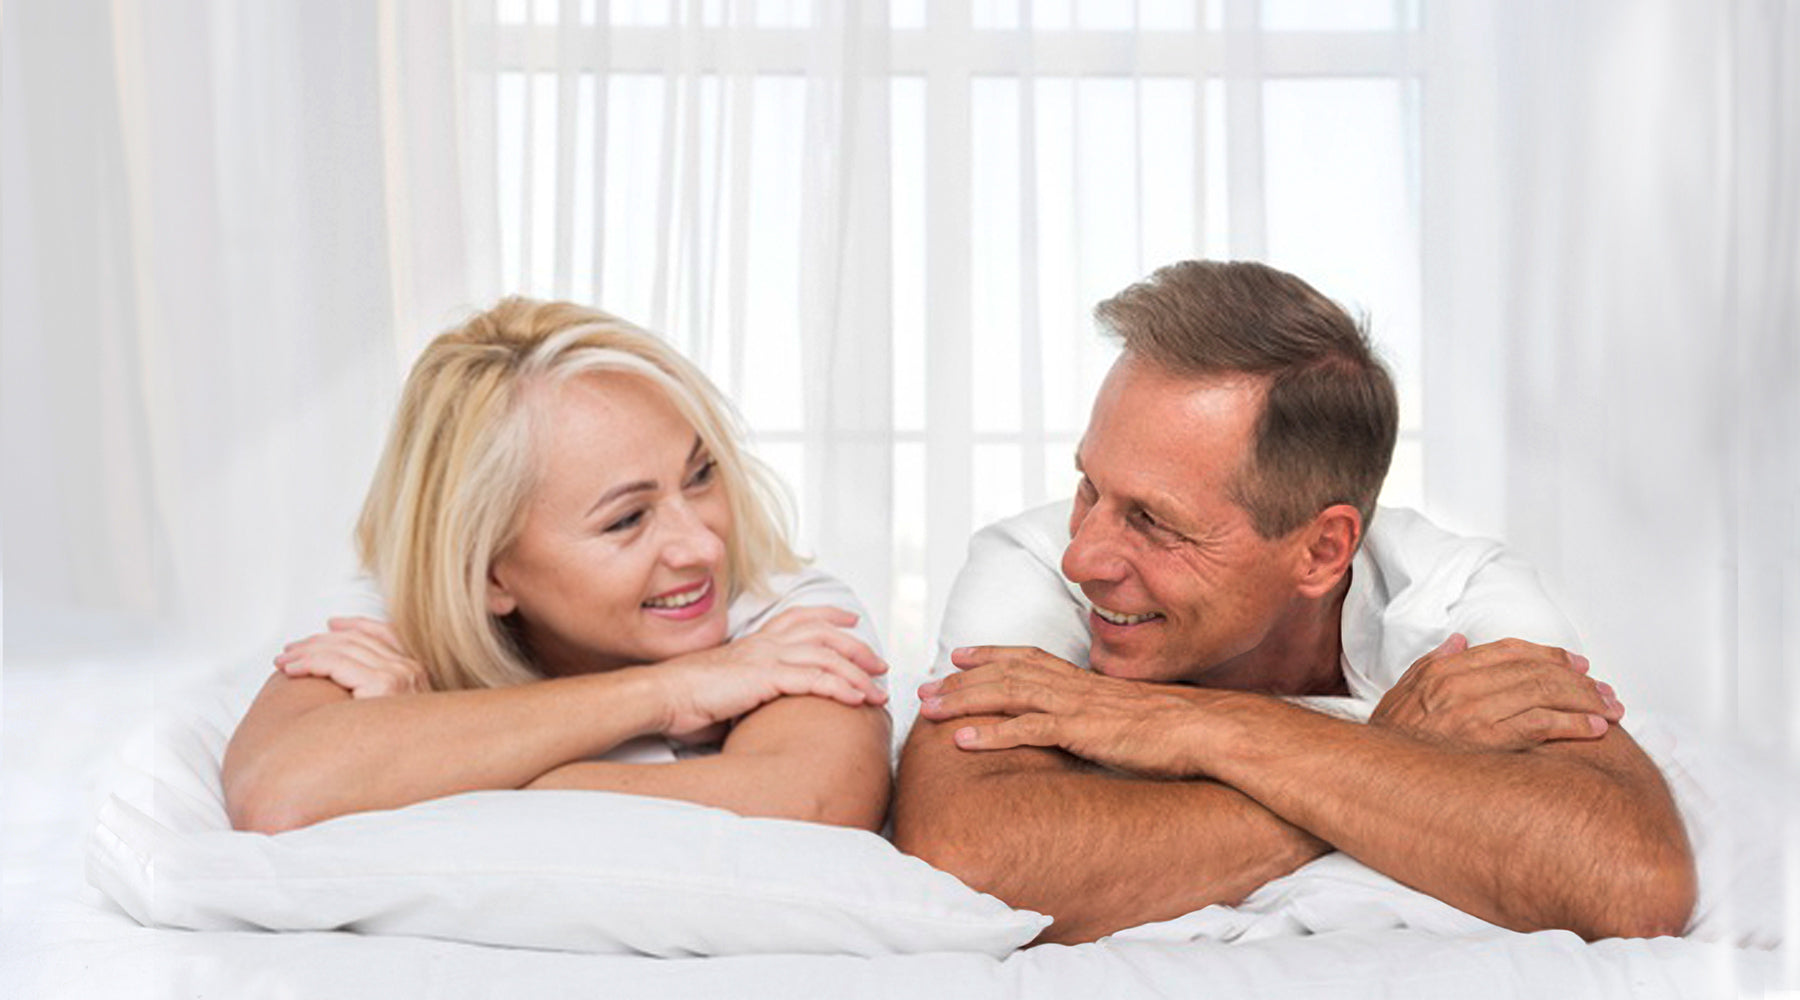 happy man and woman viewed from shoulders up in white bed with while background